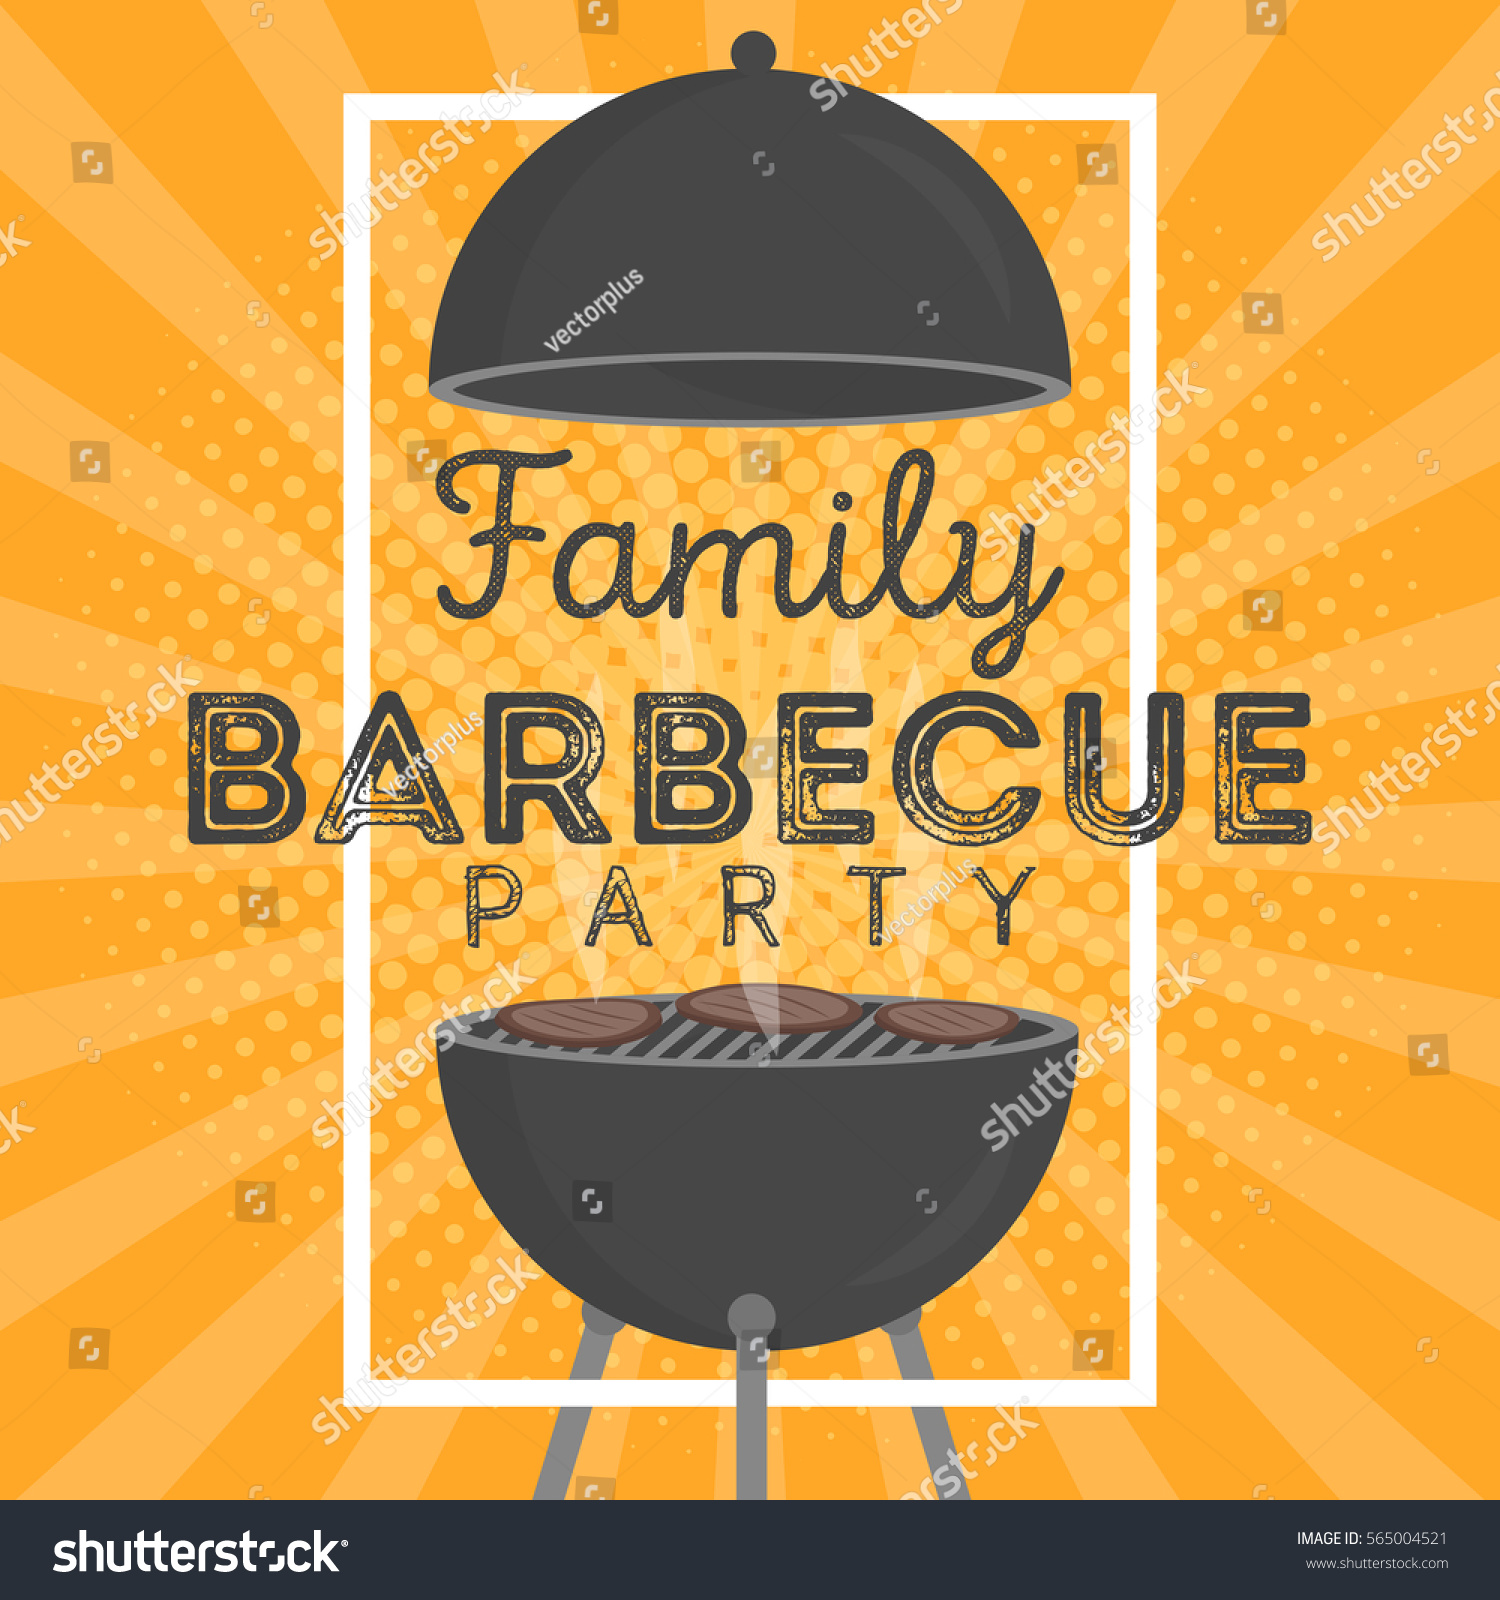 Lovely vector barbecue party invitation design stock vector lovely vector barbecue party invitation design template trendy bbq cookout poster design with classic charcoal pronofoot35fo Images